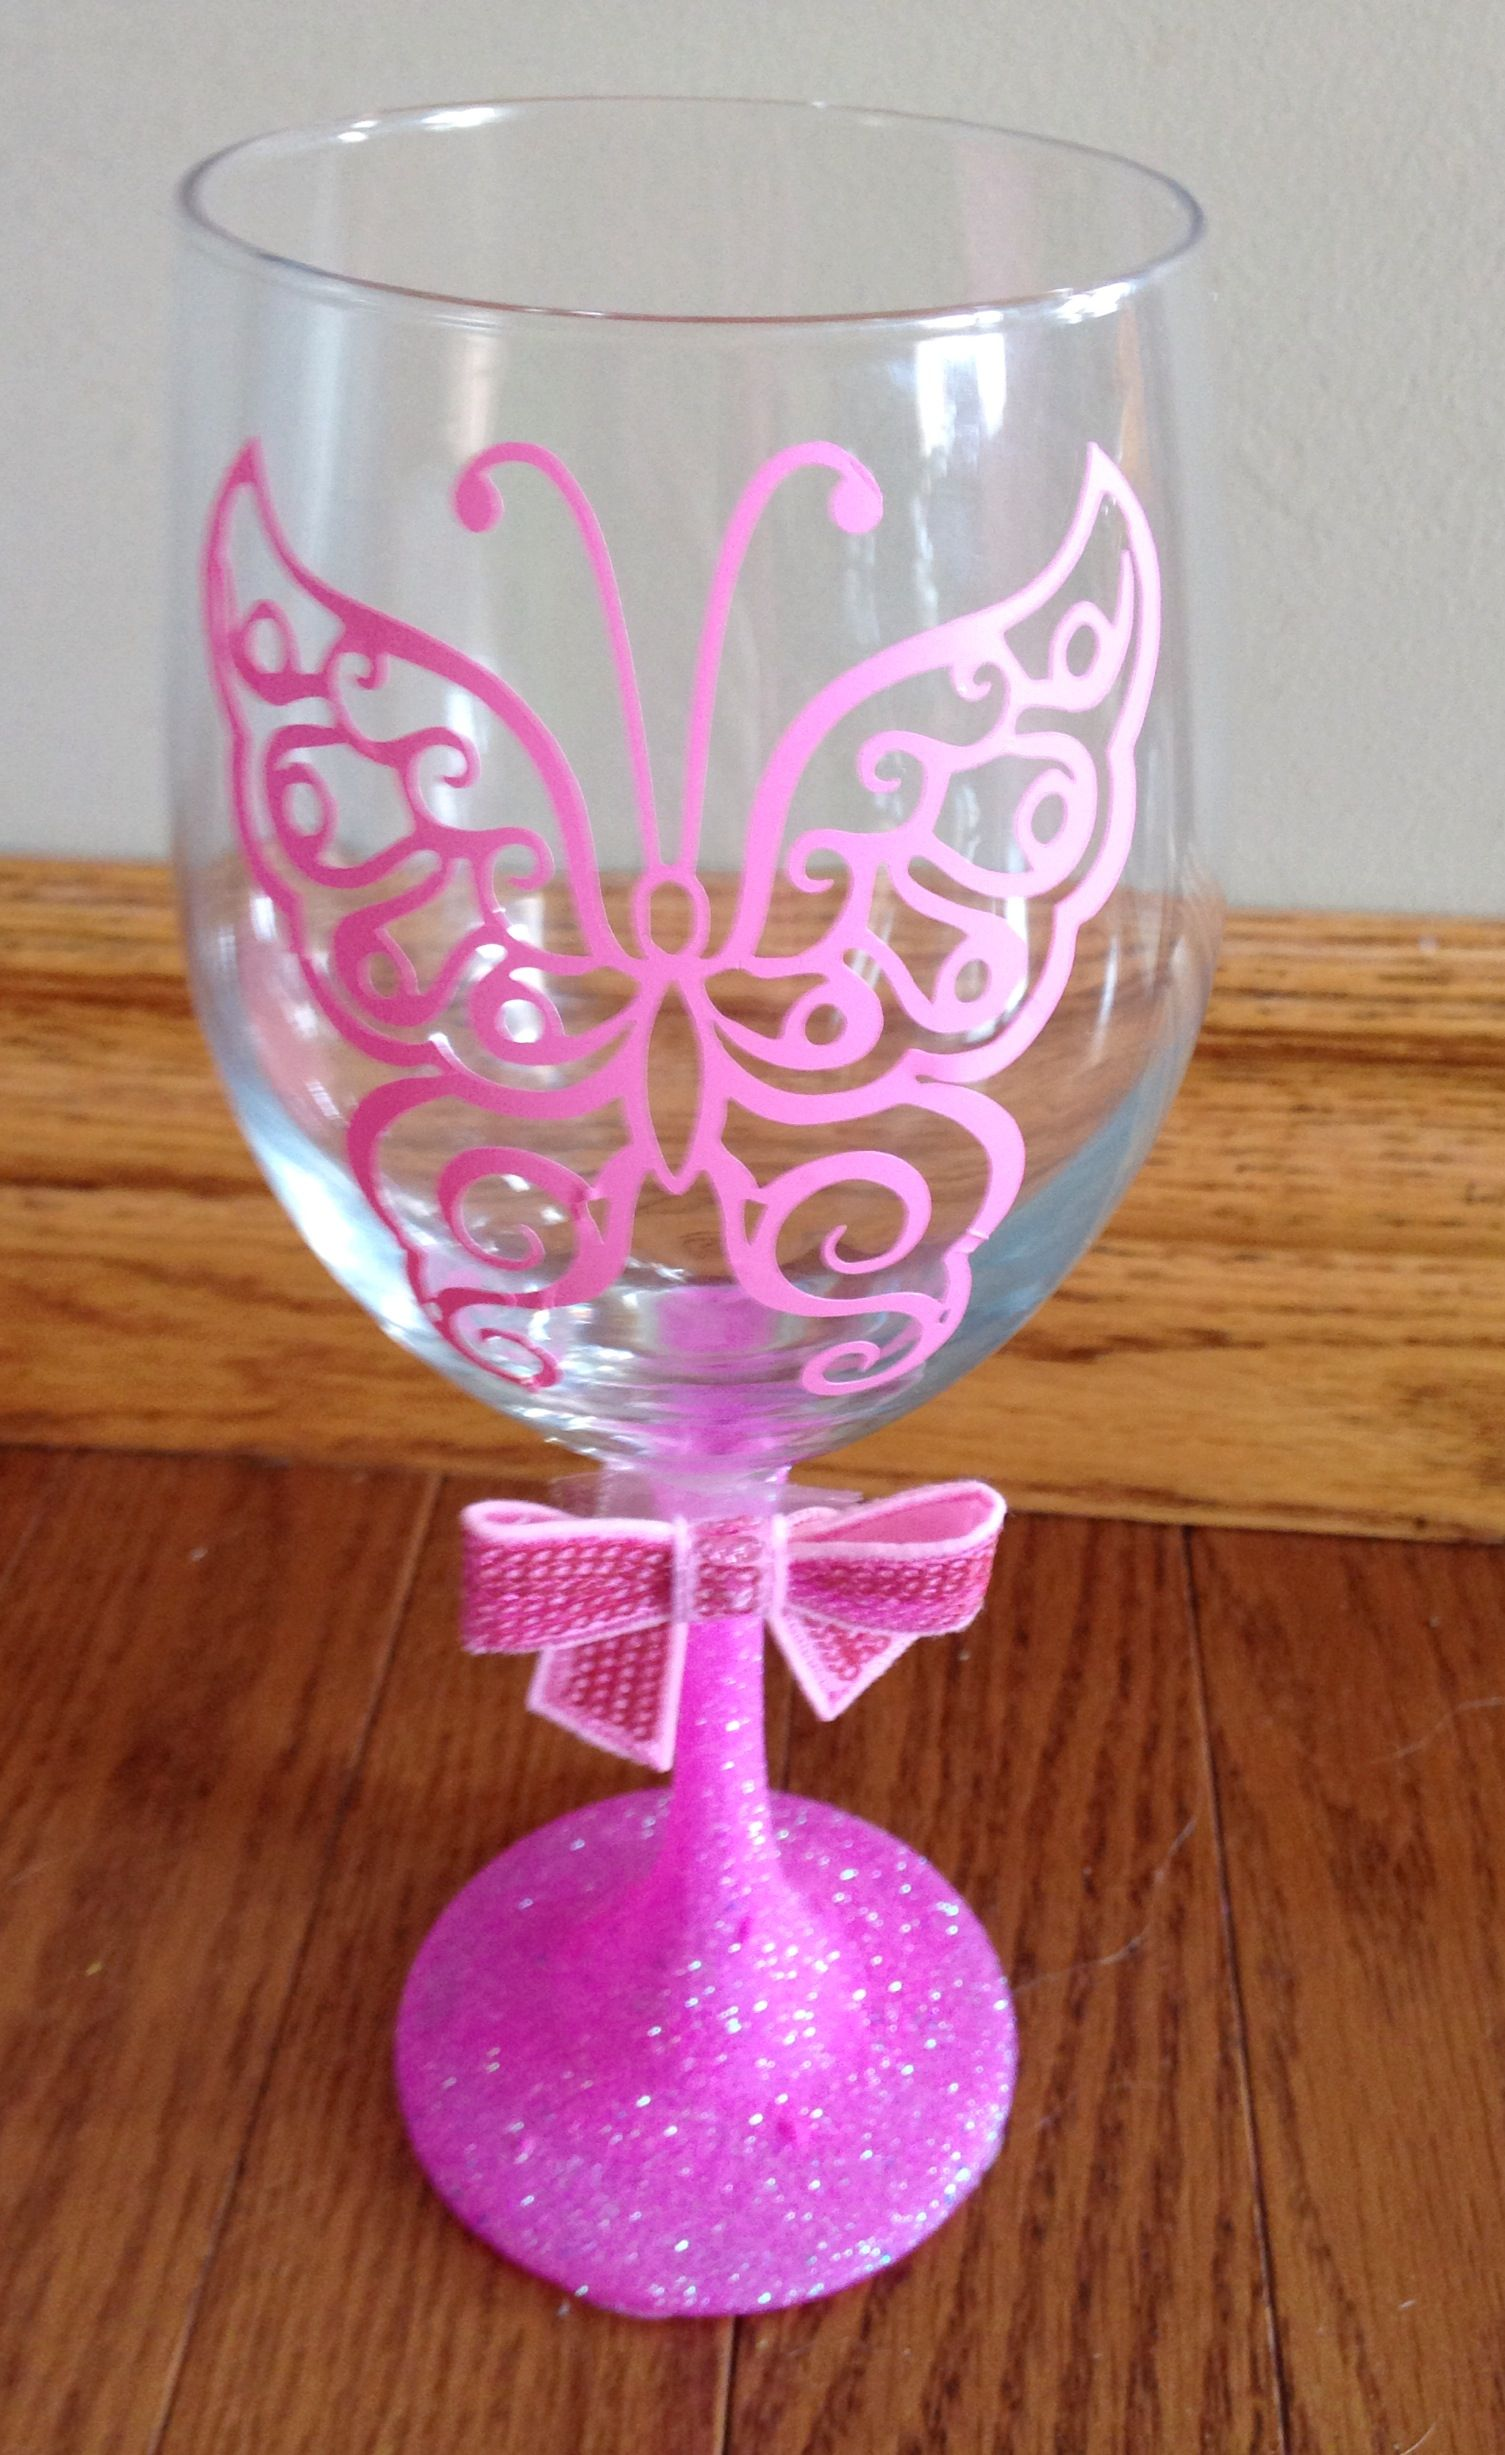 Custom glitter wine glasses wine glasses pinterest How to make wine glasses sparkle